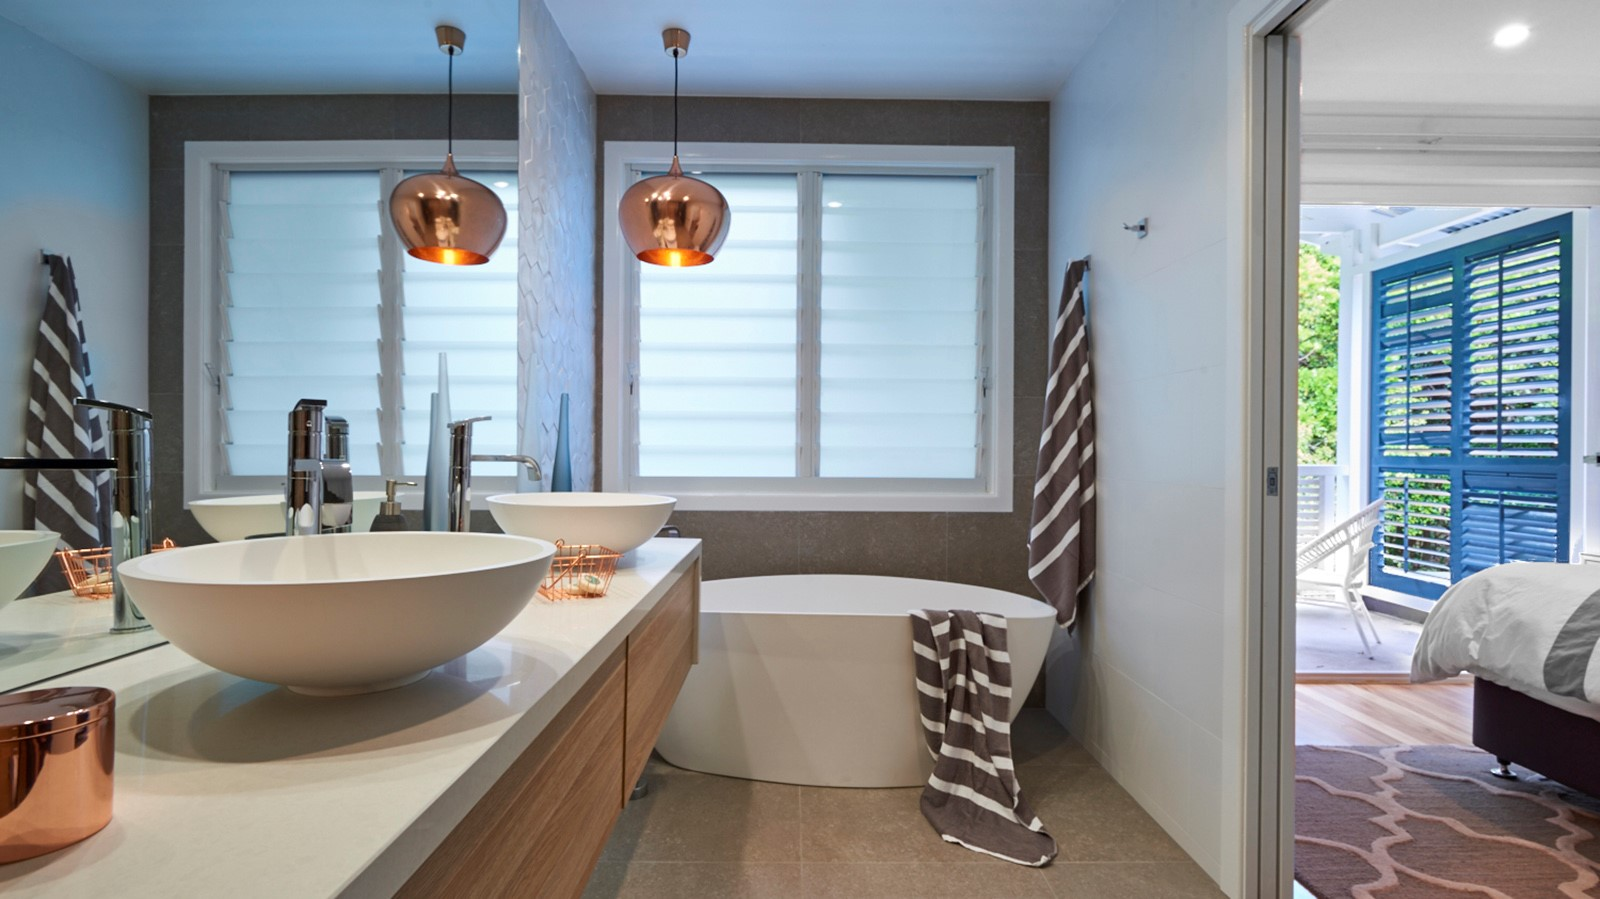 Bathroom Home Interior Design Bath Boulevard Home Interiors Interior Design Firm In California